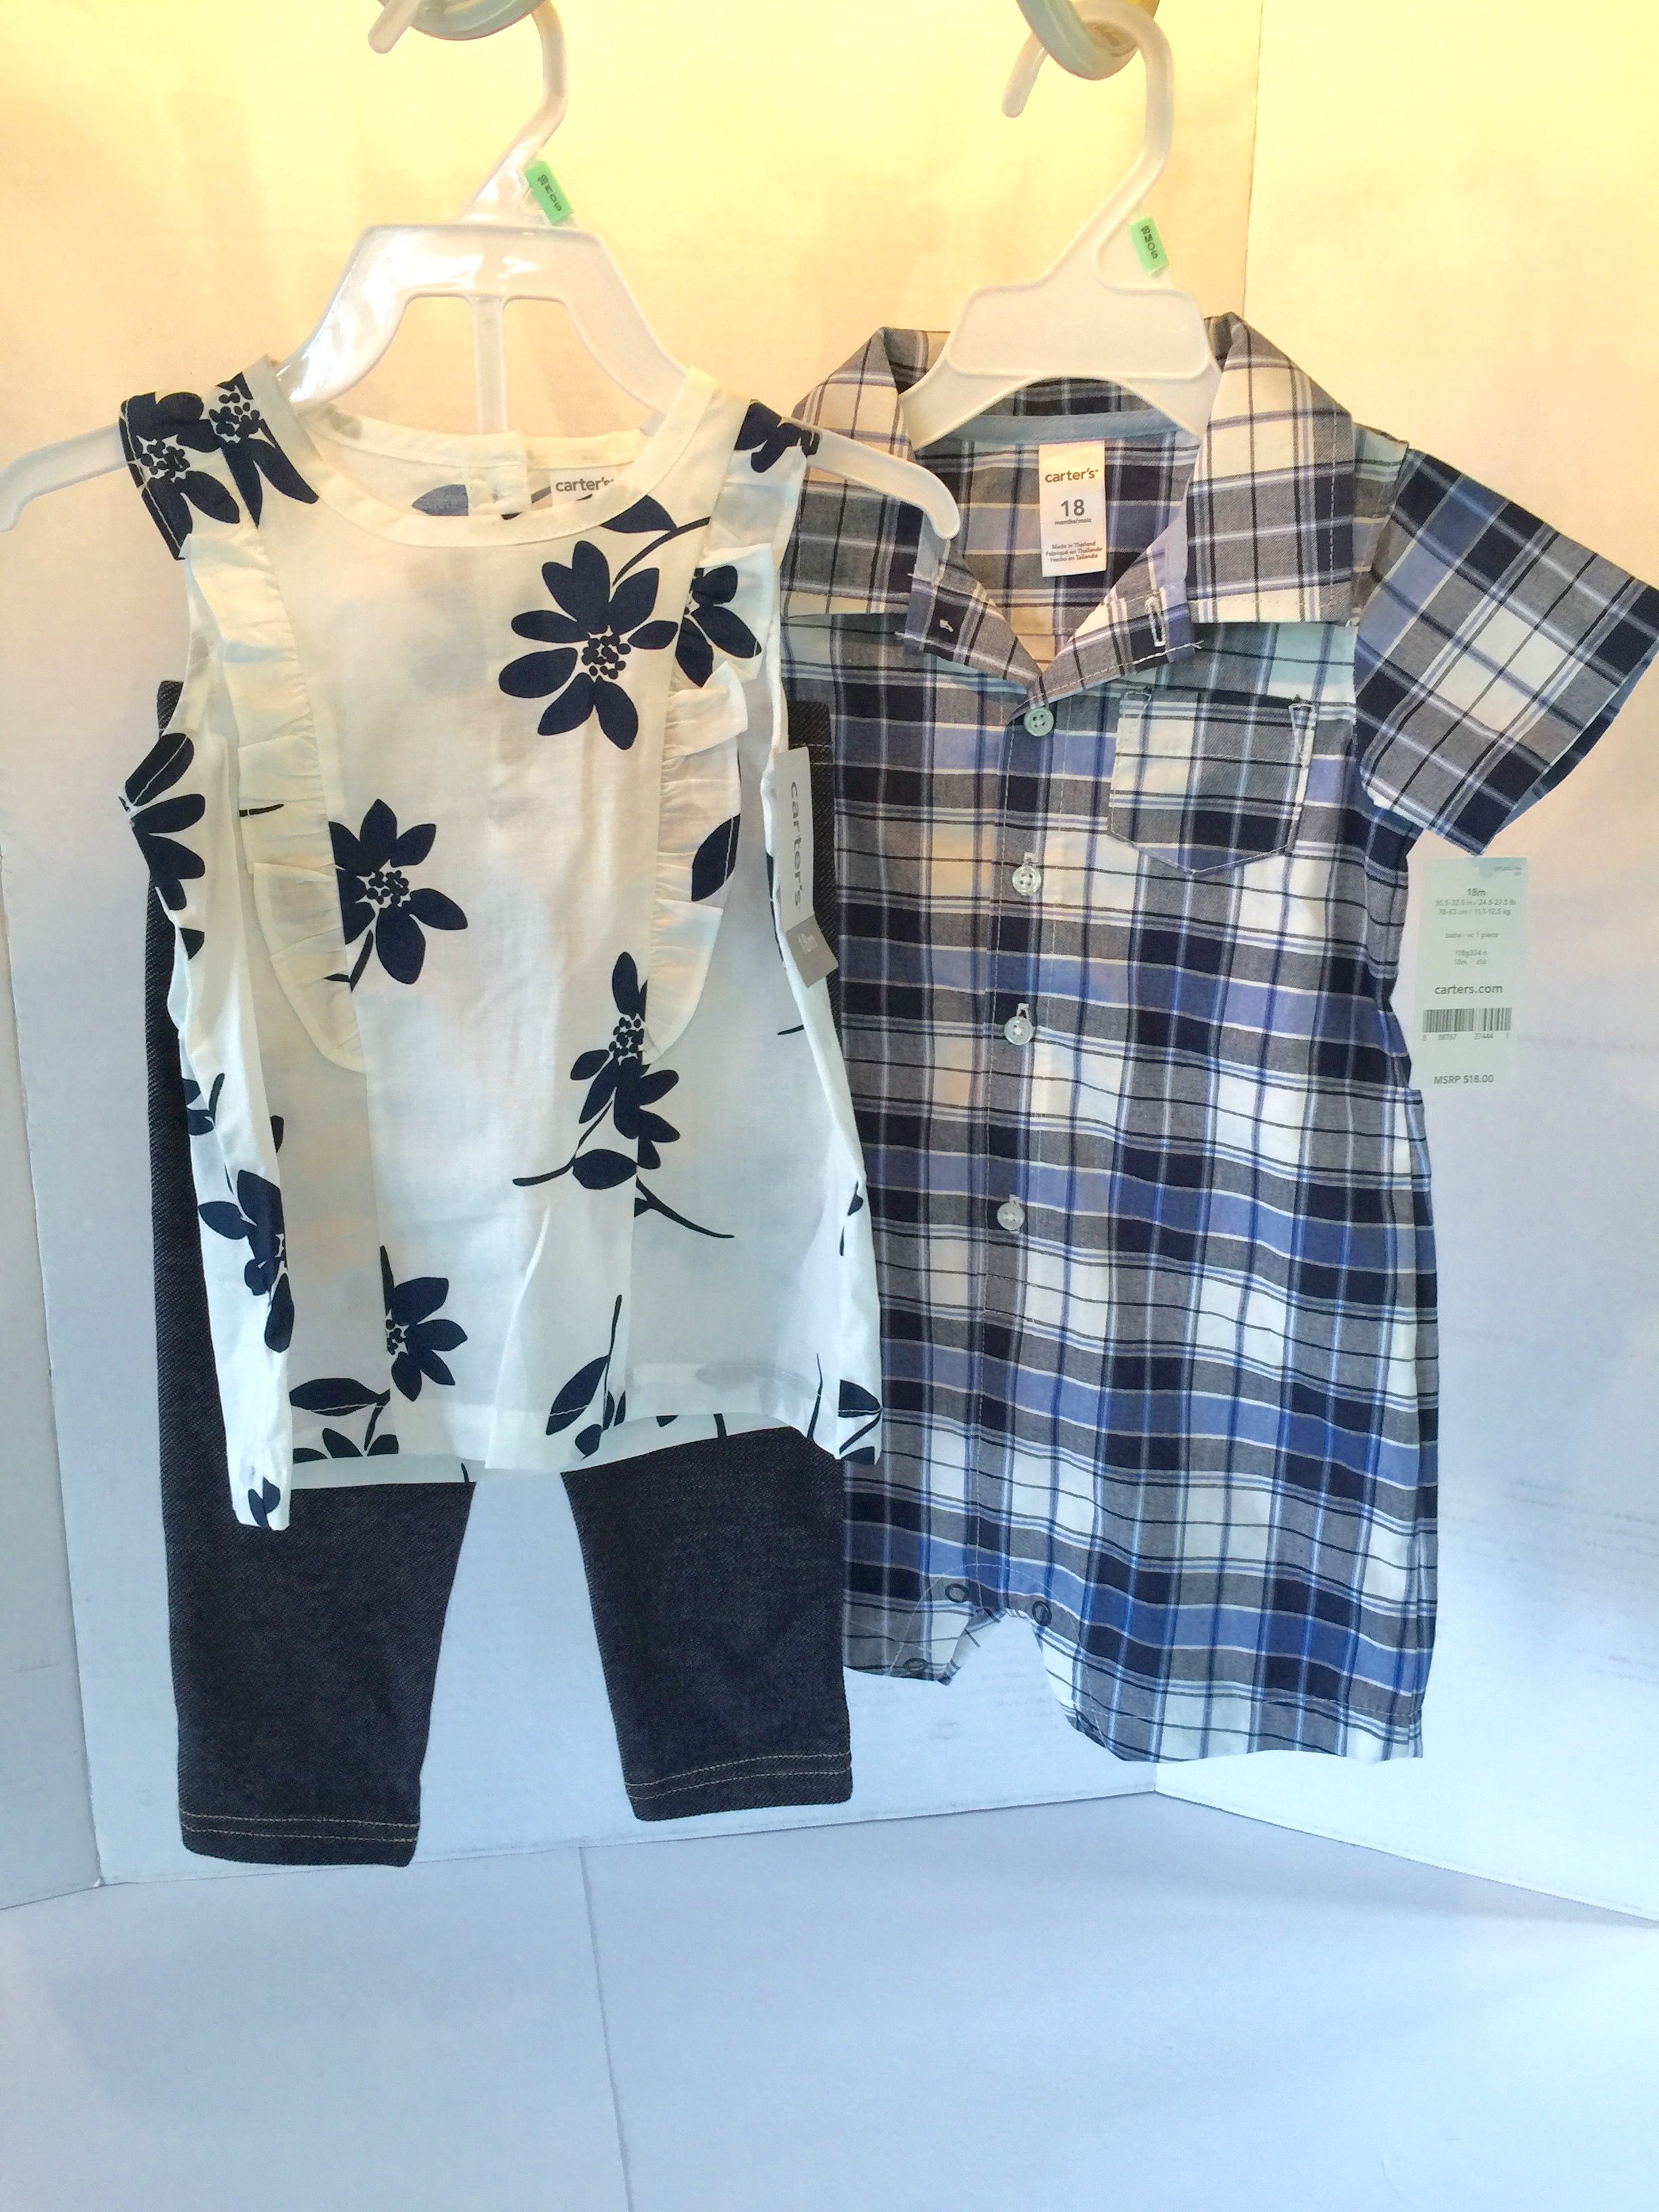 d4badd71c NWT 18 M, Boy/Girl Coordinating Outfits - Twin Baby Bargains